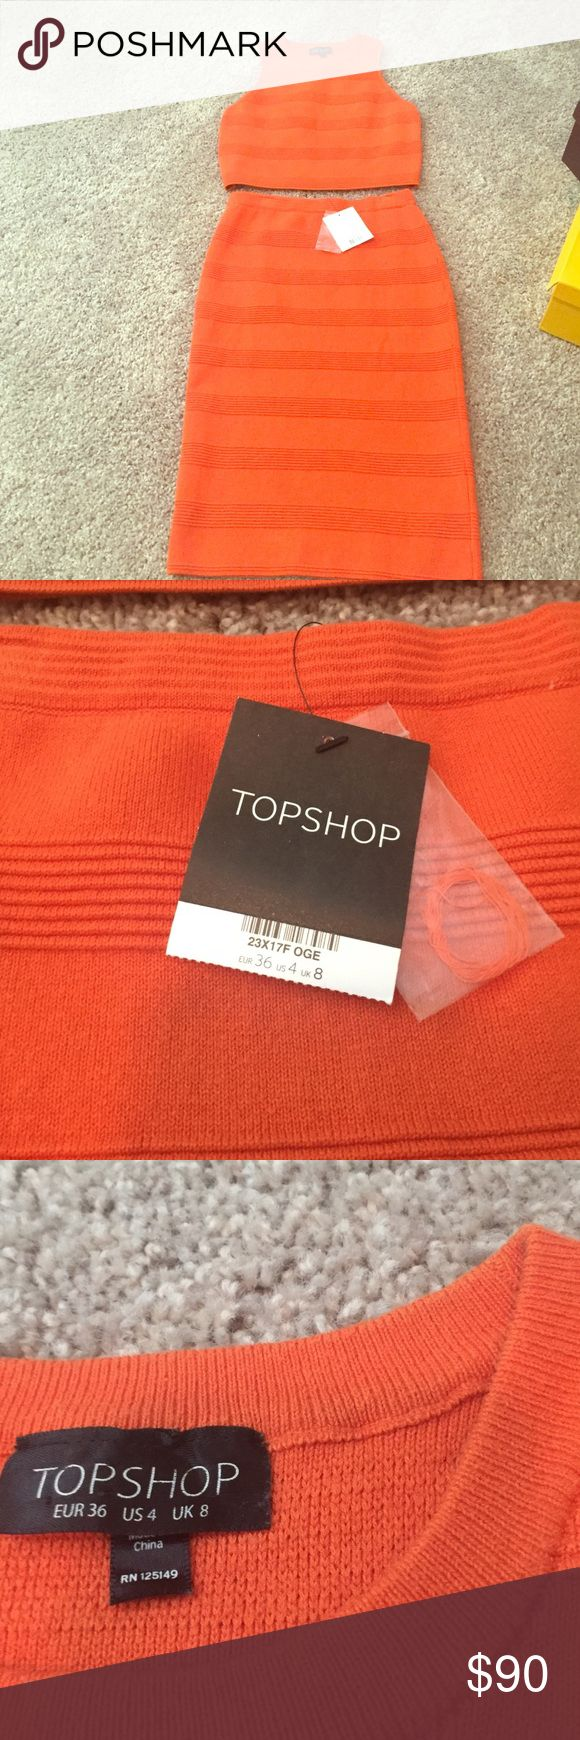 Size 4 Orange TOPSHOP crop shell and mid skirt Skirt (never been worn tag still on ) and crop top worn once) Orange size 4 TOPSHOP sweater material.  So cute on but I don't fit it. Originally $150 together but will sell both $90 together. Tag still on skirt, top worn once. Topshop Dresses Midi